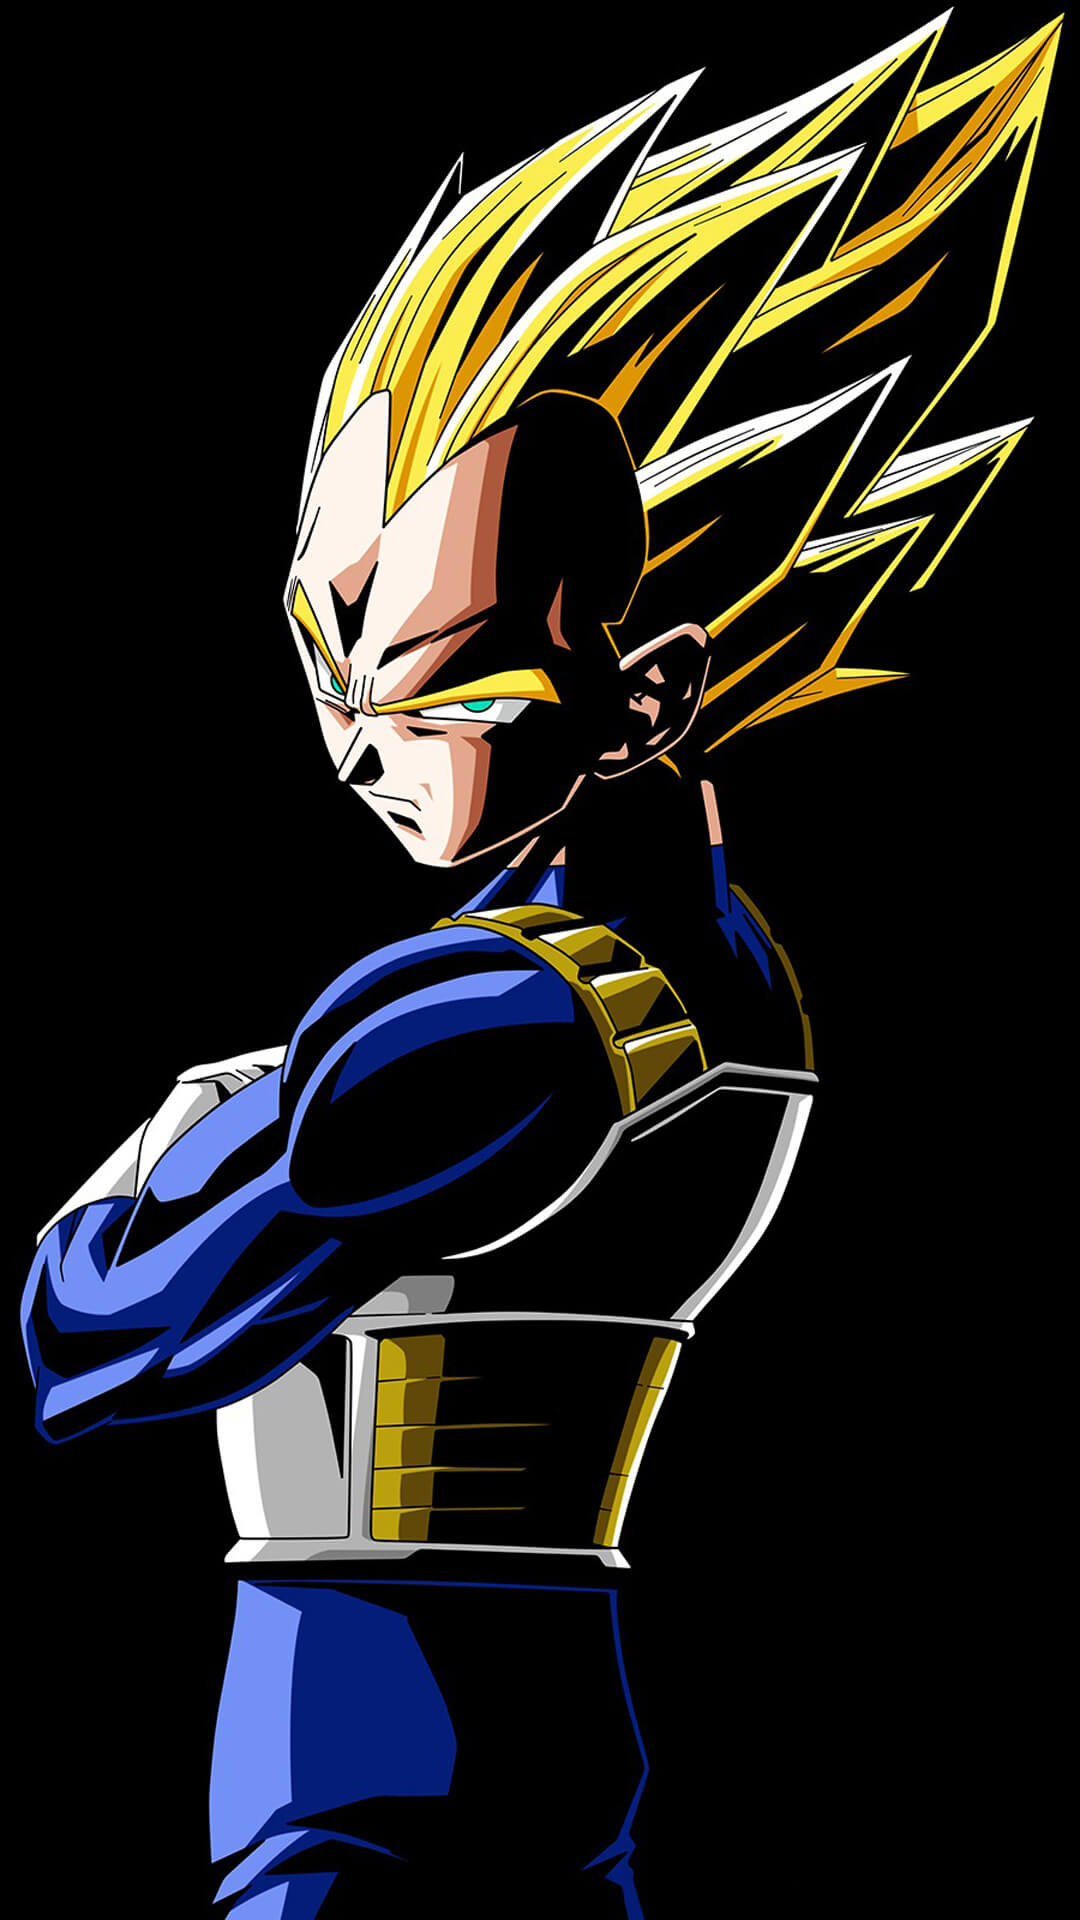 Dragon Ball Z Vegeta Iphone Wallpaper HD4Wallpapernet 1080x1920